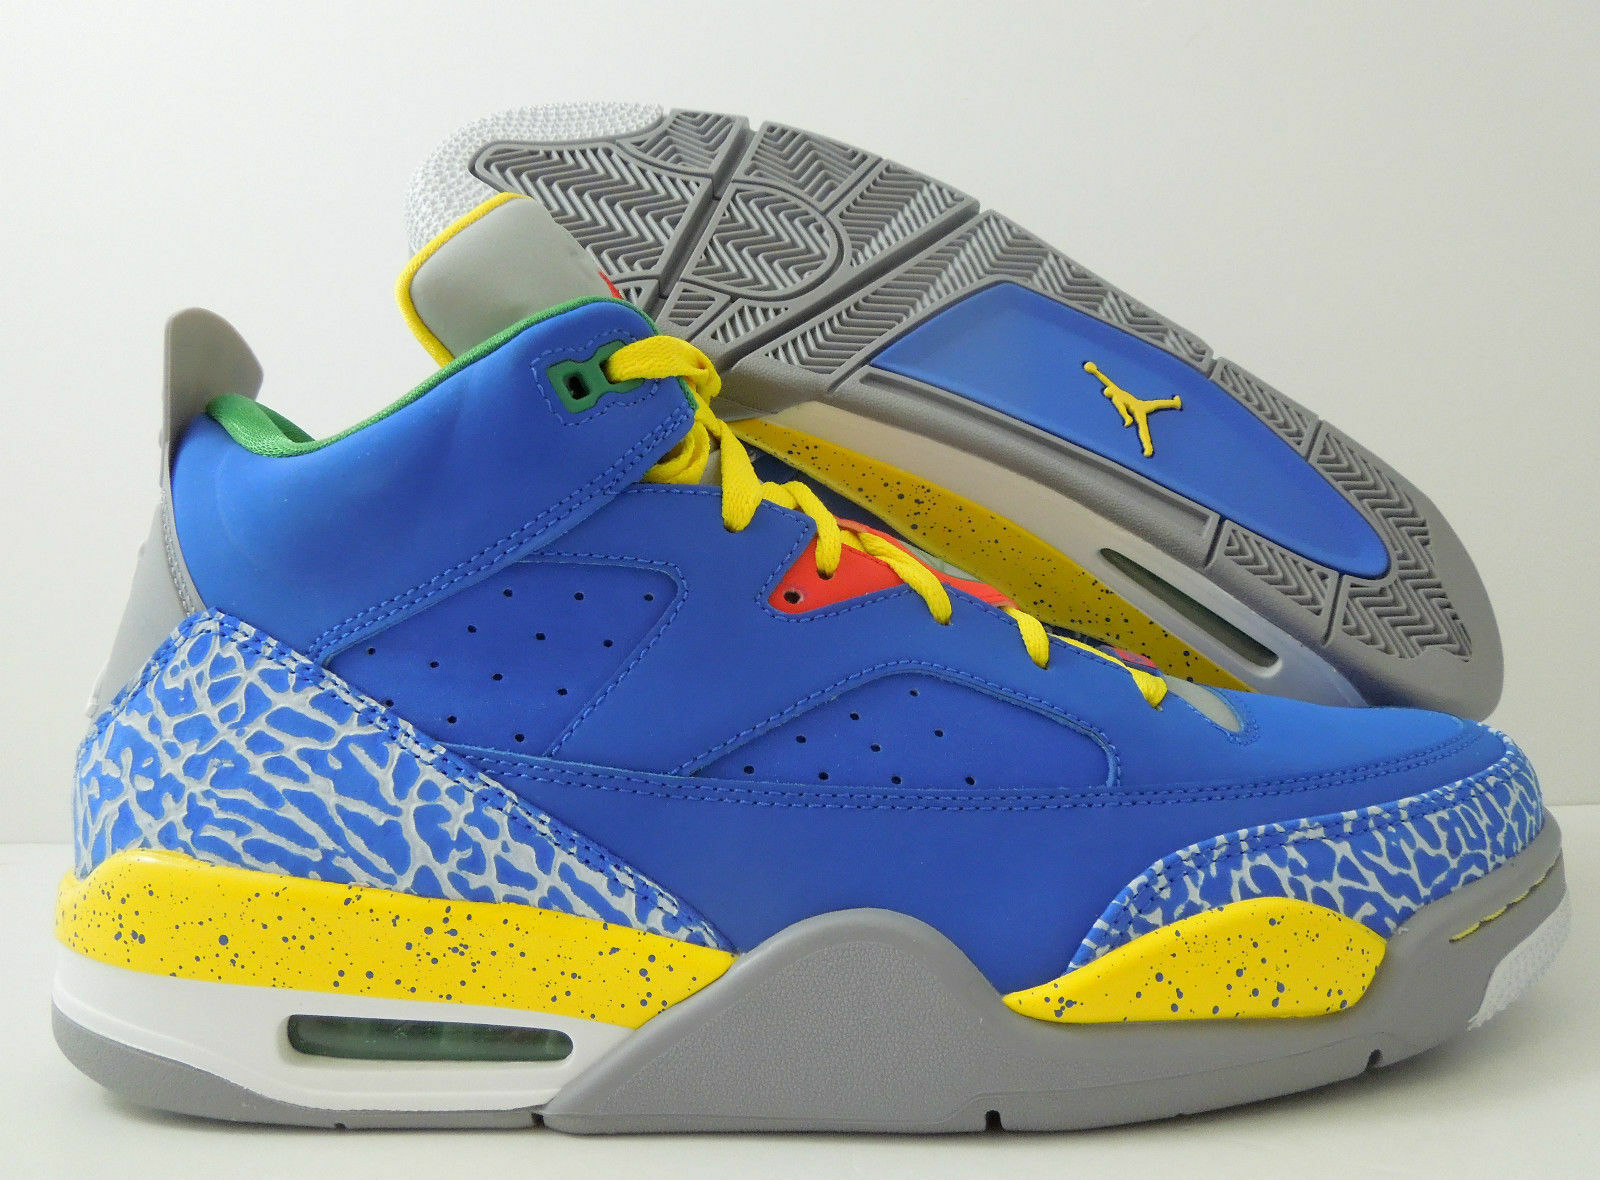 NIKE JORDAN SON OF LOW DO THE RIGHT THING GAME ROYAL ROYAL GAME BLUE SZ 10 [580603-433] 1f19a9